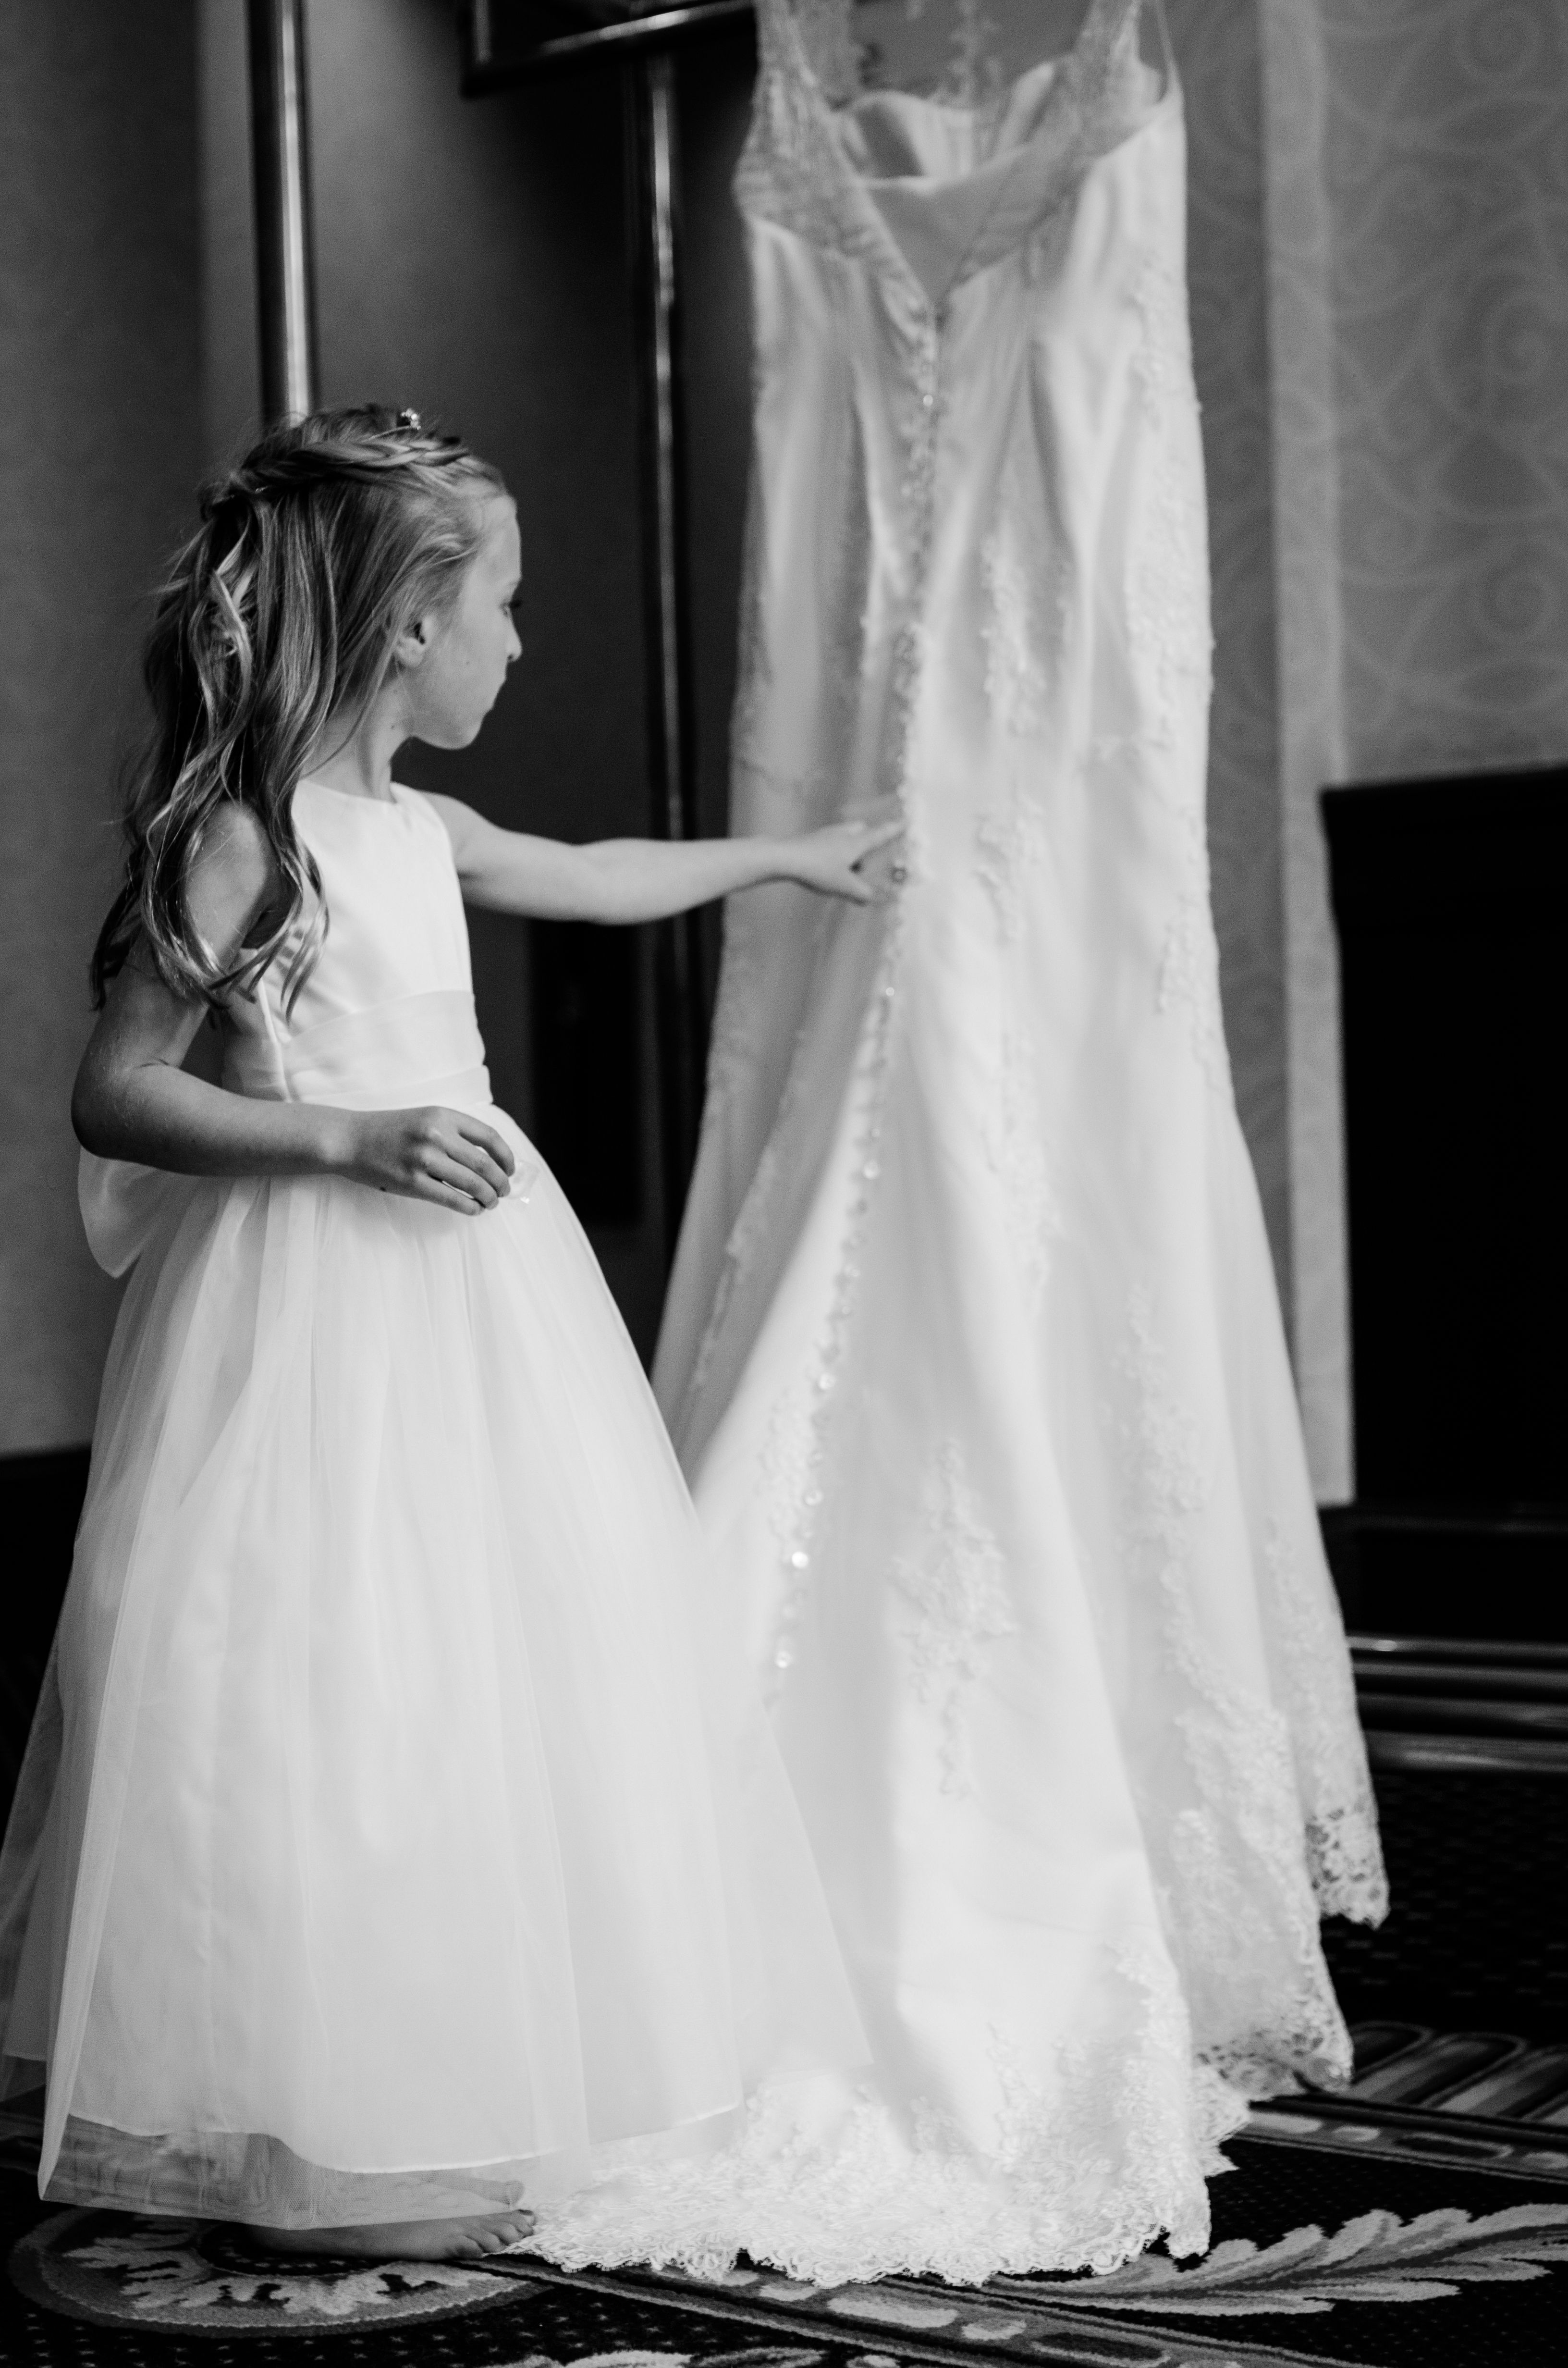 Wedding dresses for black girls  Flower girl counting the buttons on the brides dress  Indianapolis